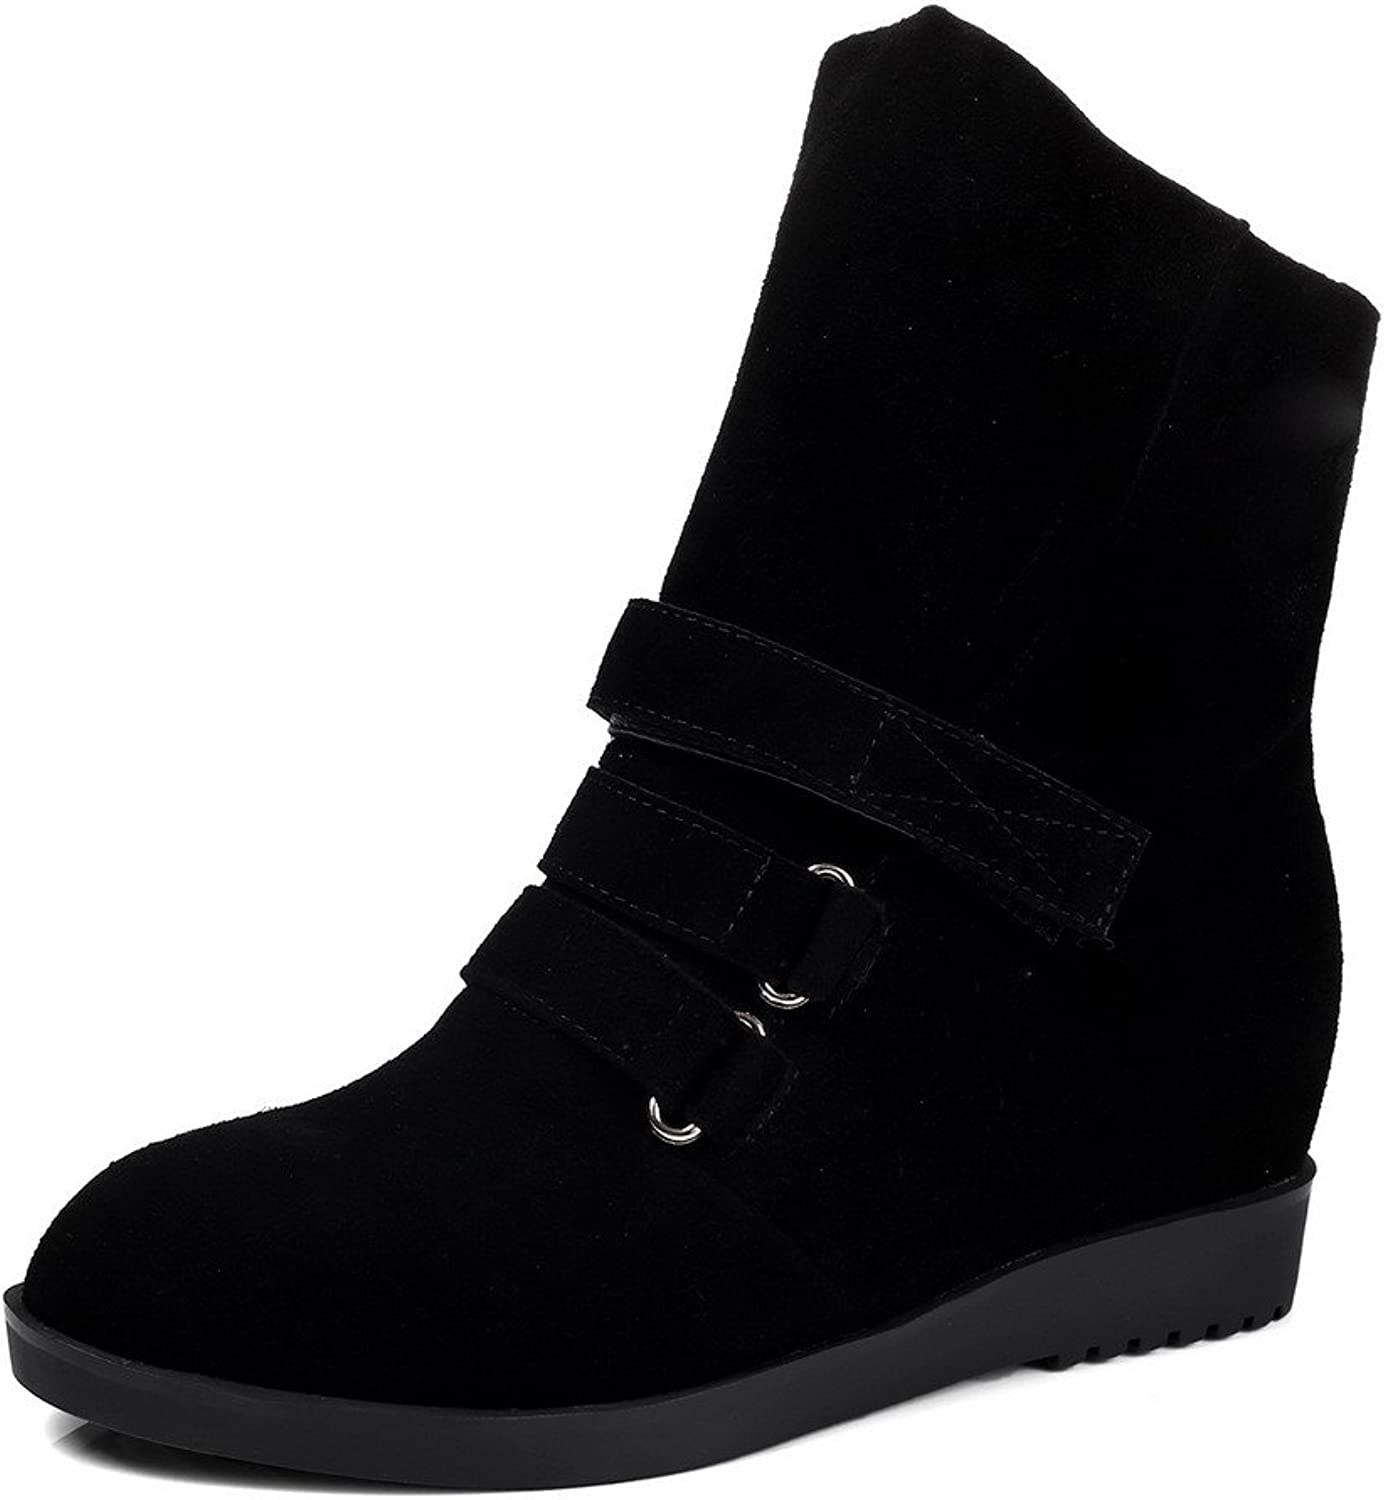 WeiPoot Women's Frosted Solid Closed-Toe Boots with Slipping Sole and Ring Velcro